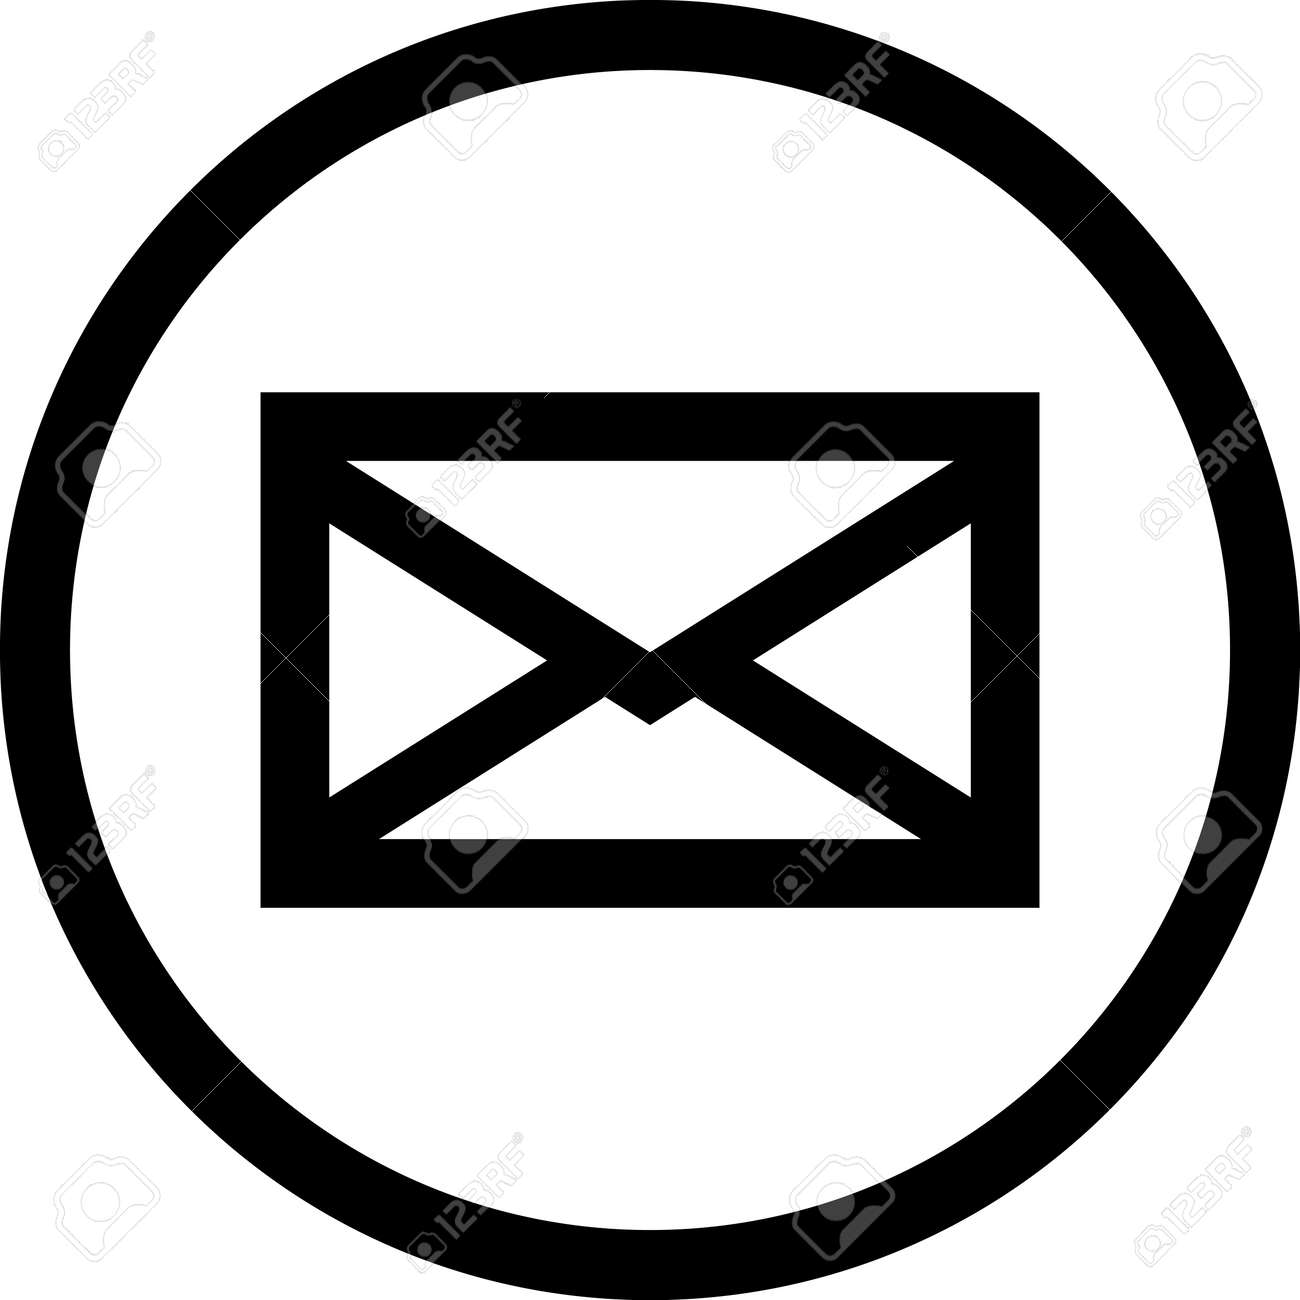 mail message vector icon isolated royalty free cliparts vectors